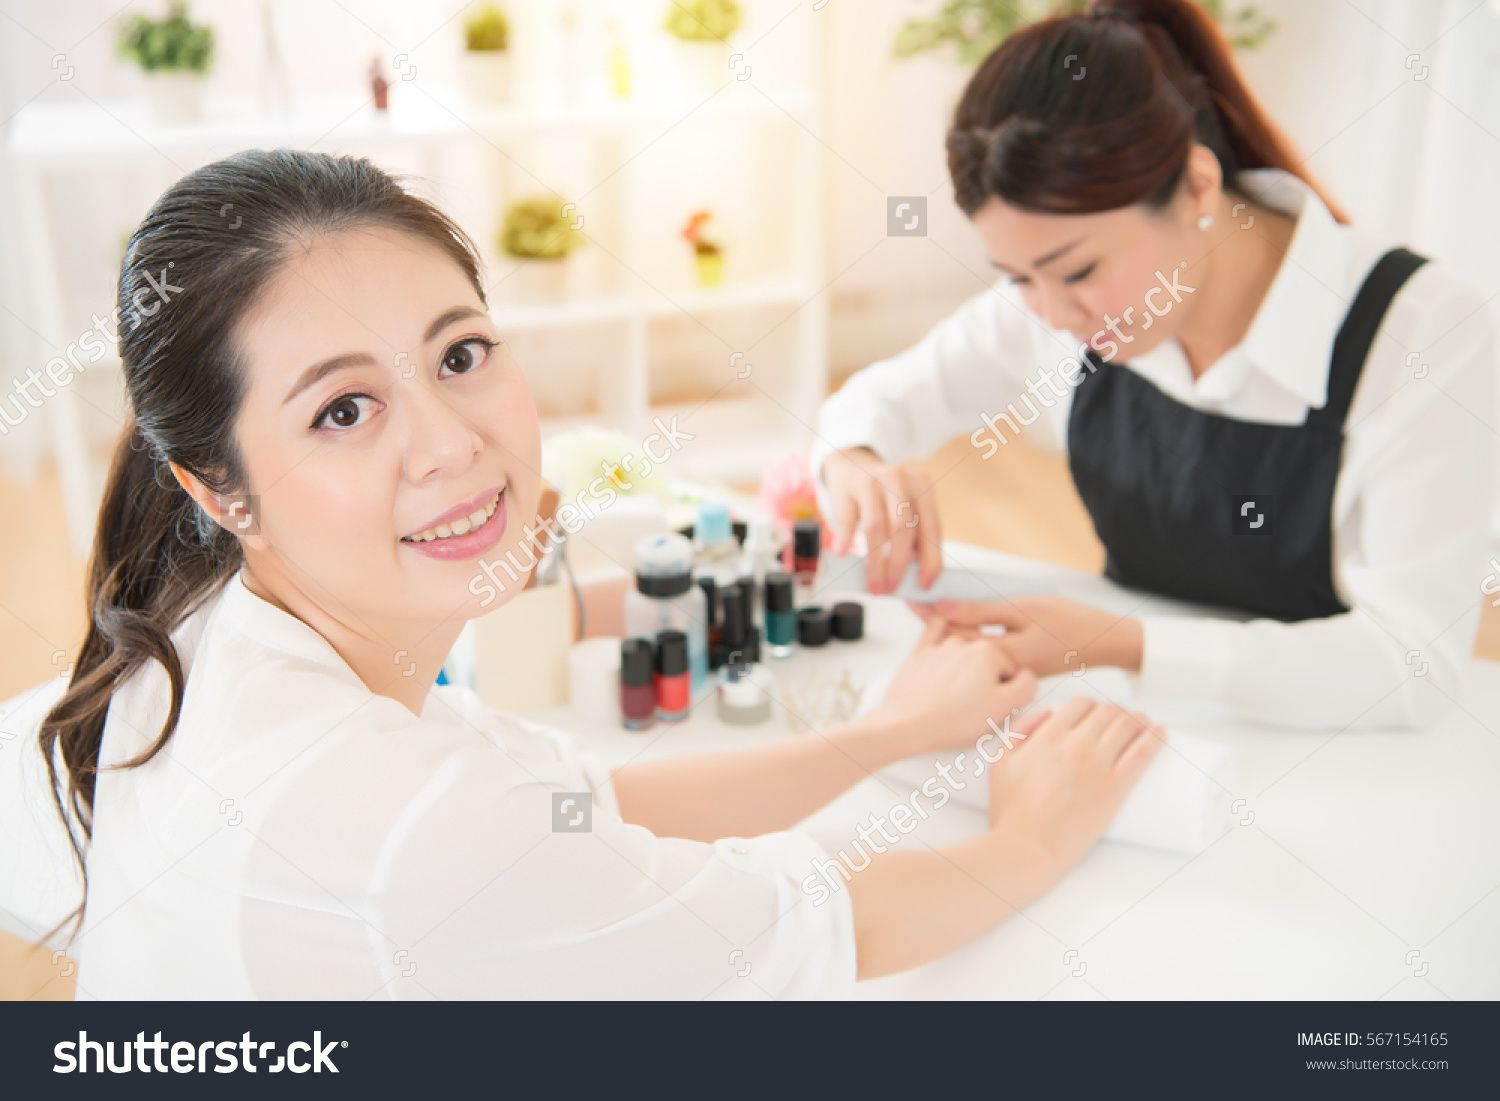 Beautiful Hy Smile Asian Chinese Women Enjoy Doing Manicure With Professional Manicurist Filed Her Nails